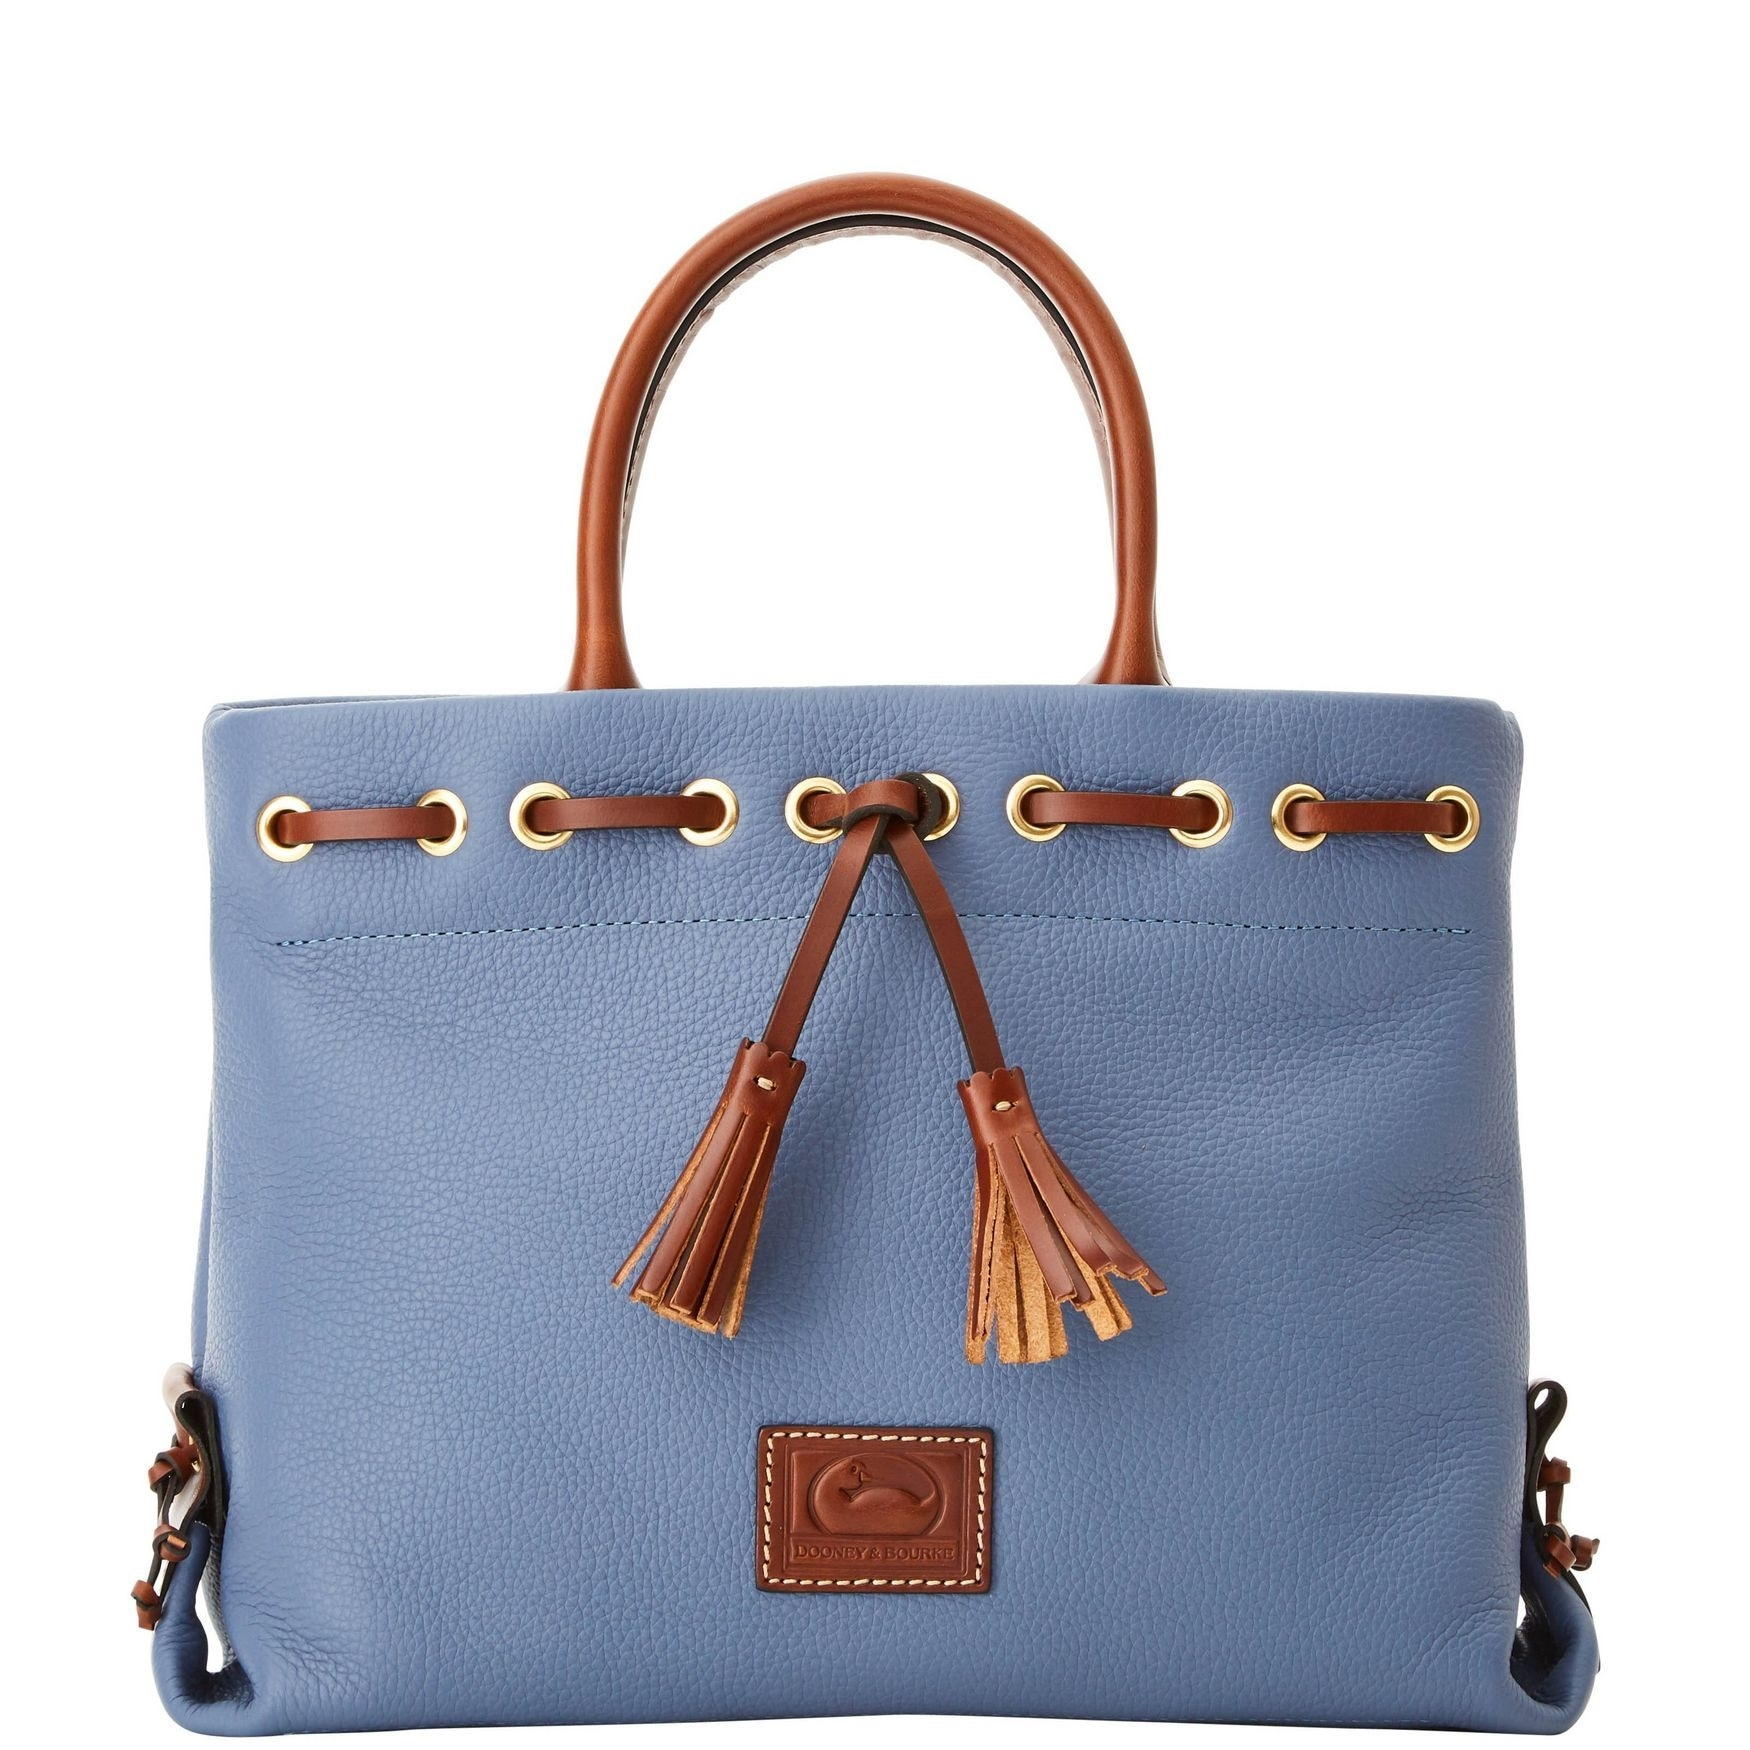 18c55c63e85be6 Buy Leather Tote Bags Online at Overstock | Our Best Shop By Style Deals